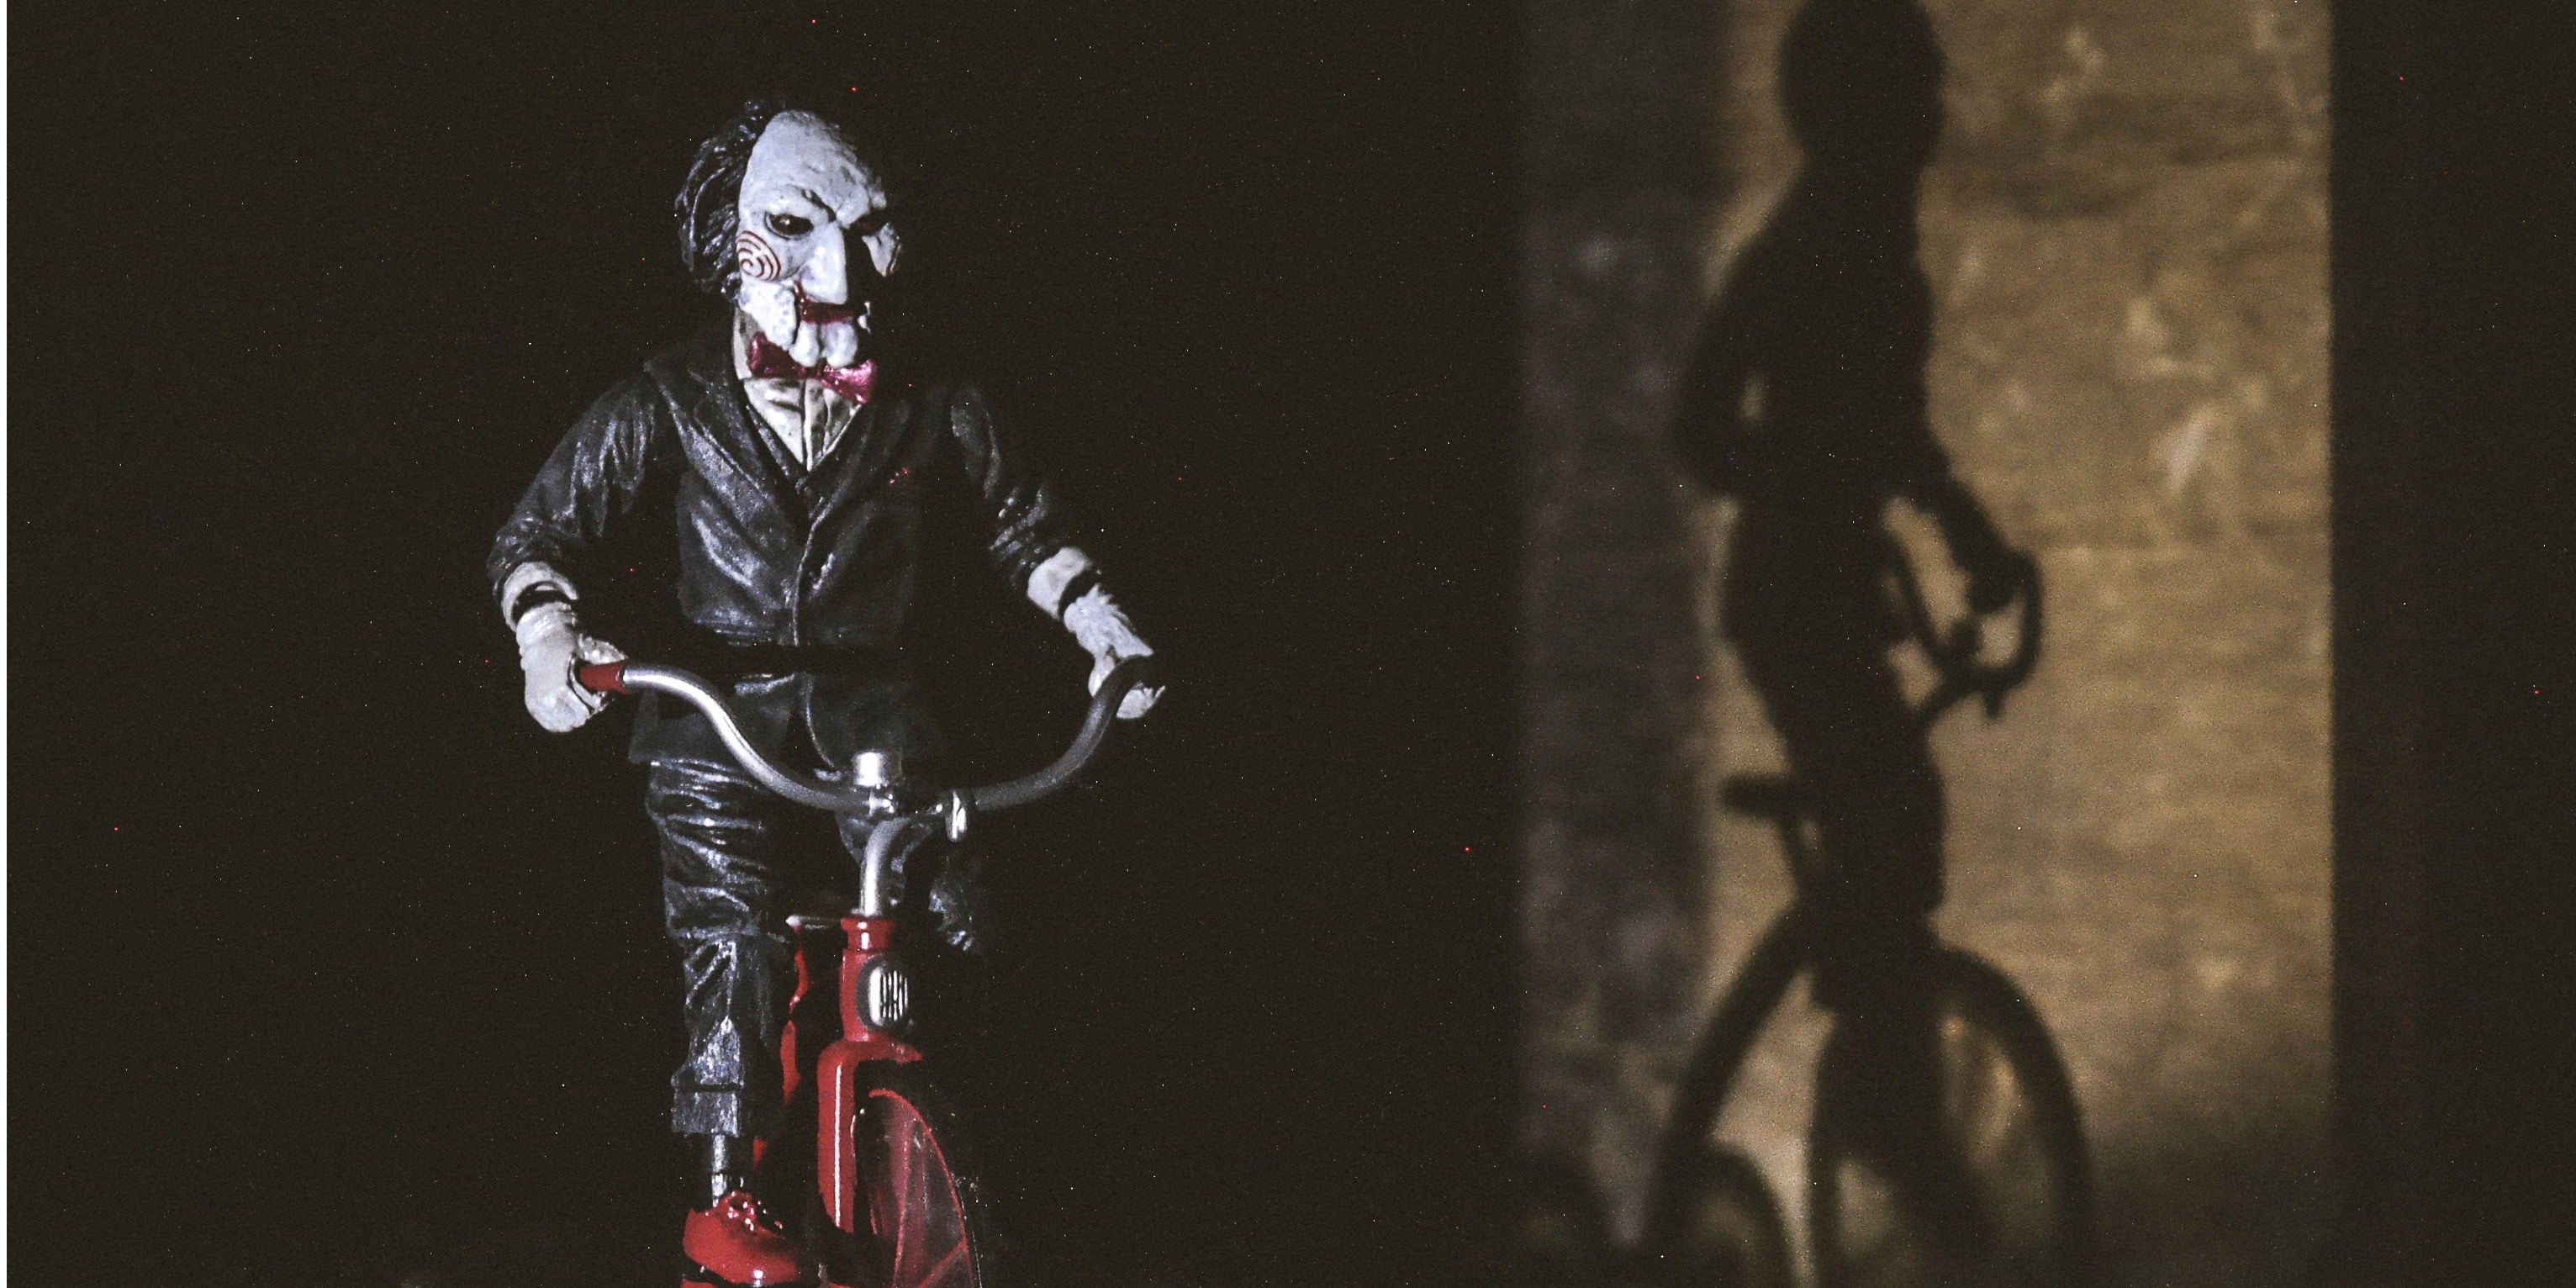 An image of Jigsaw, from the horror movie 'Saw'. Jigsaw is a scary puppet on a tricycle.